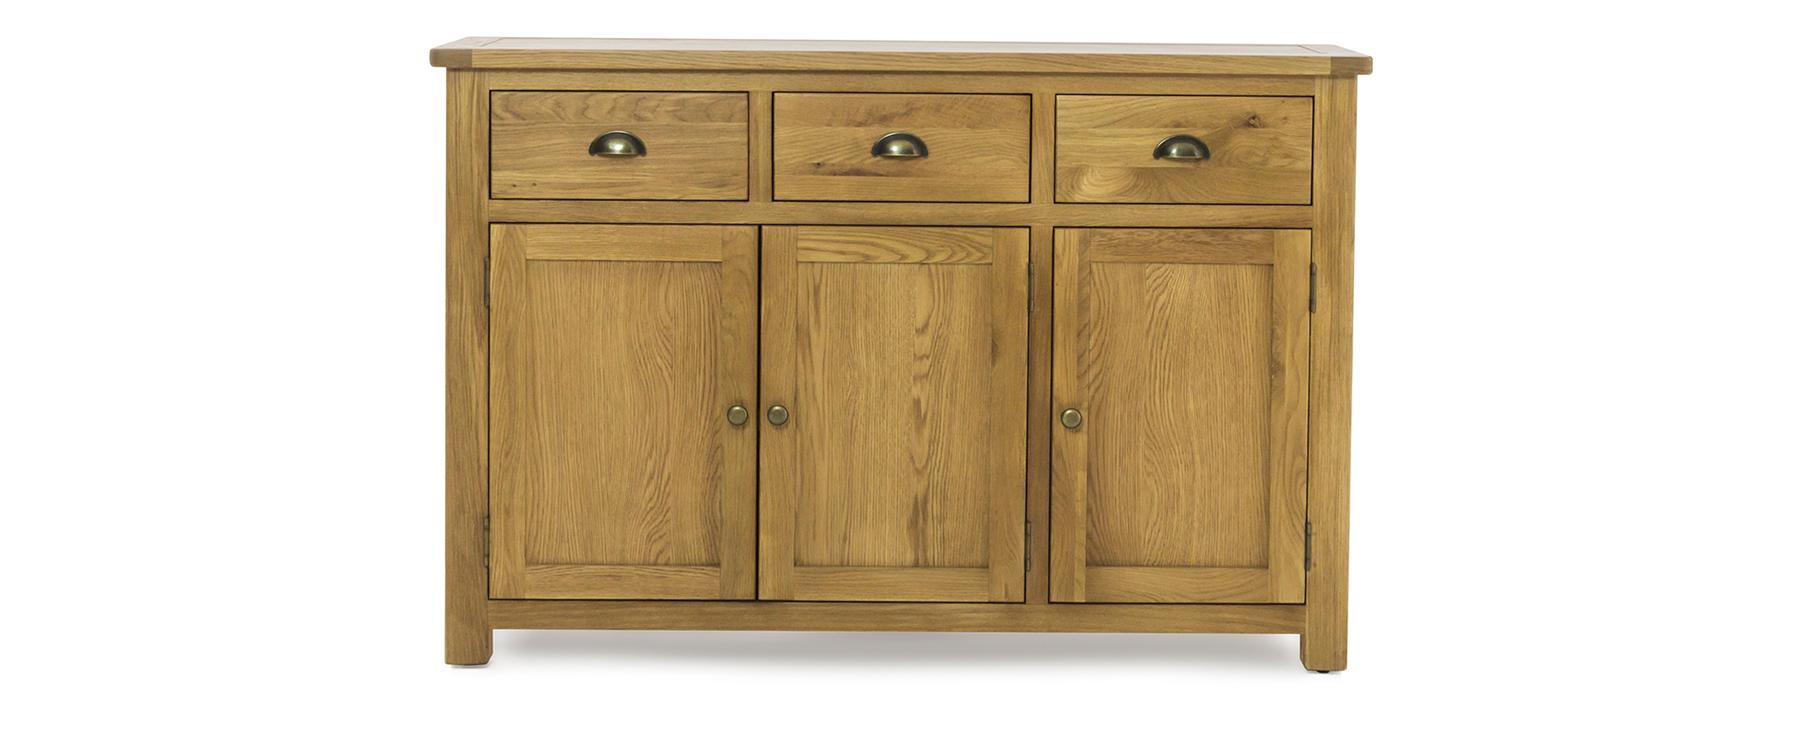 Meubles Furniture Ireland Canterbury 3 Door 3 Drawer Sideboard